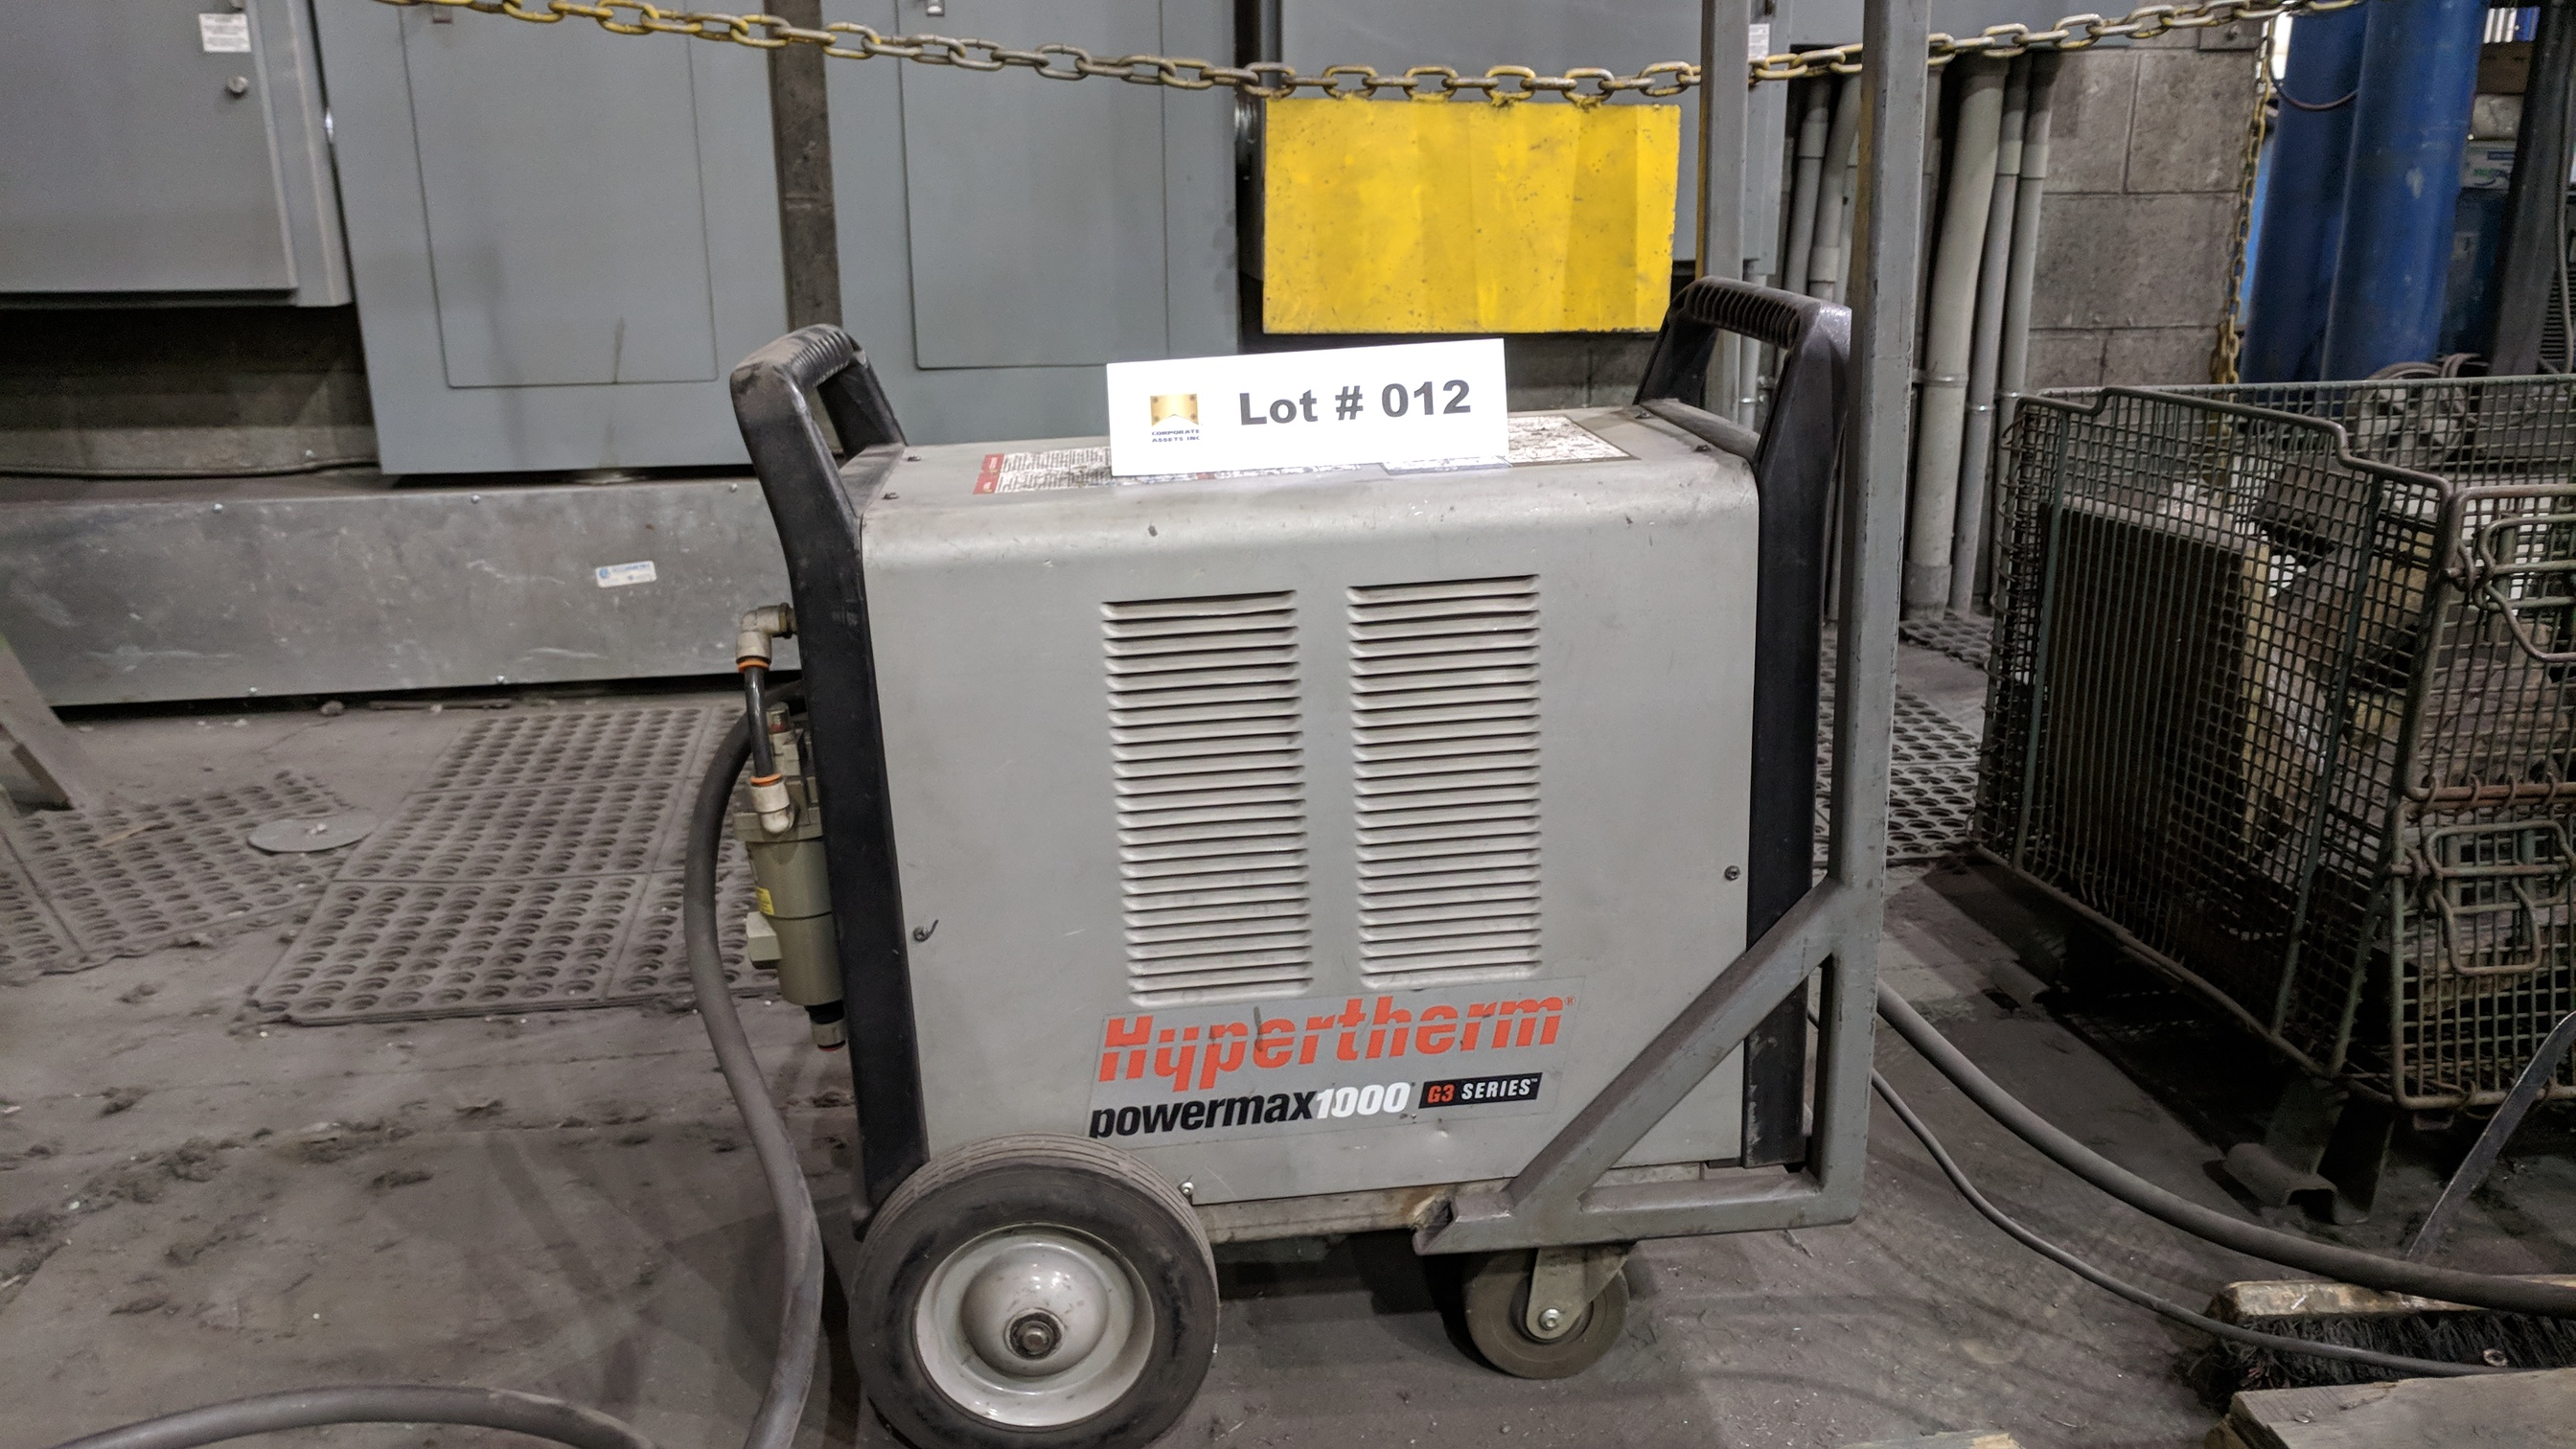 HYPERTHERM POWERMAX 1000 G3 SERIES PORTABLE PLASMA CUTTER WITH CABLES AND GUN, S/N N/A